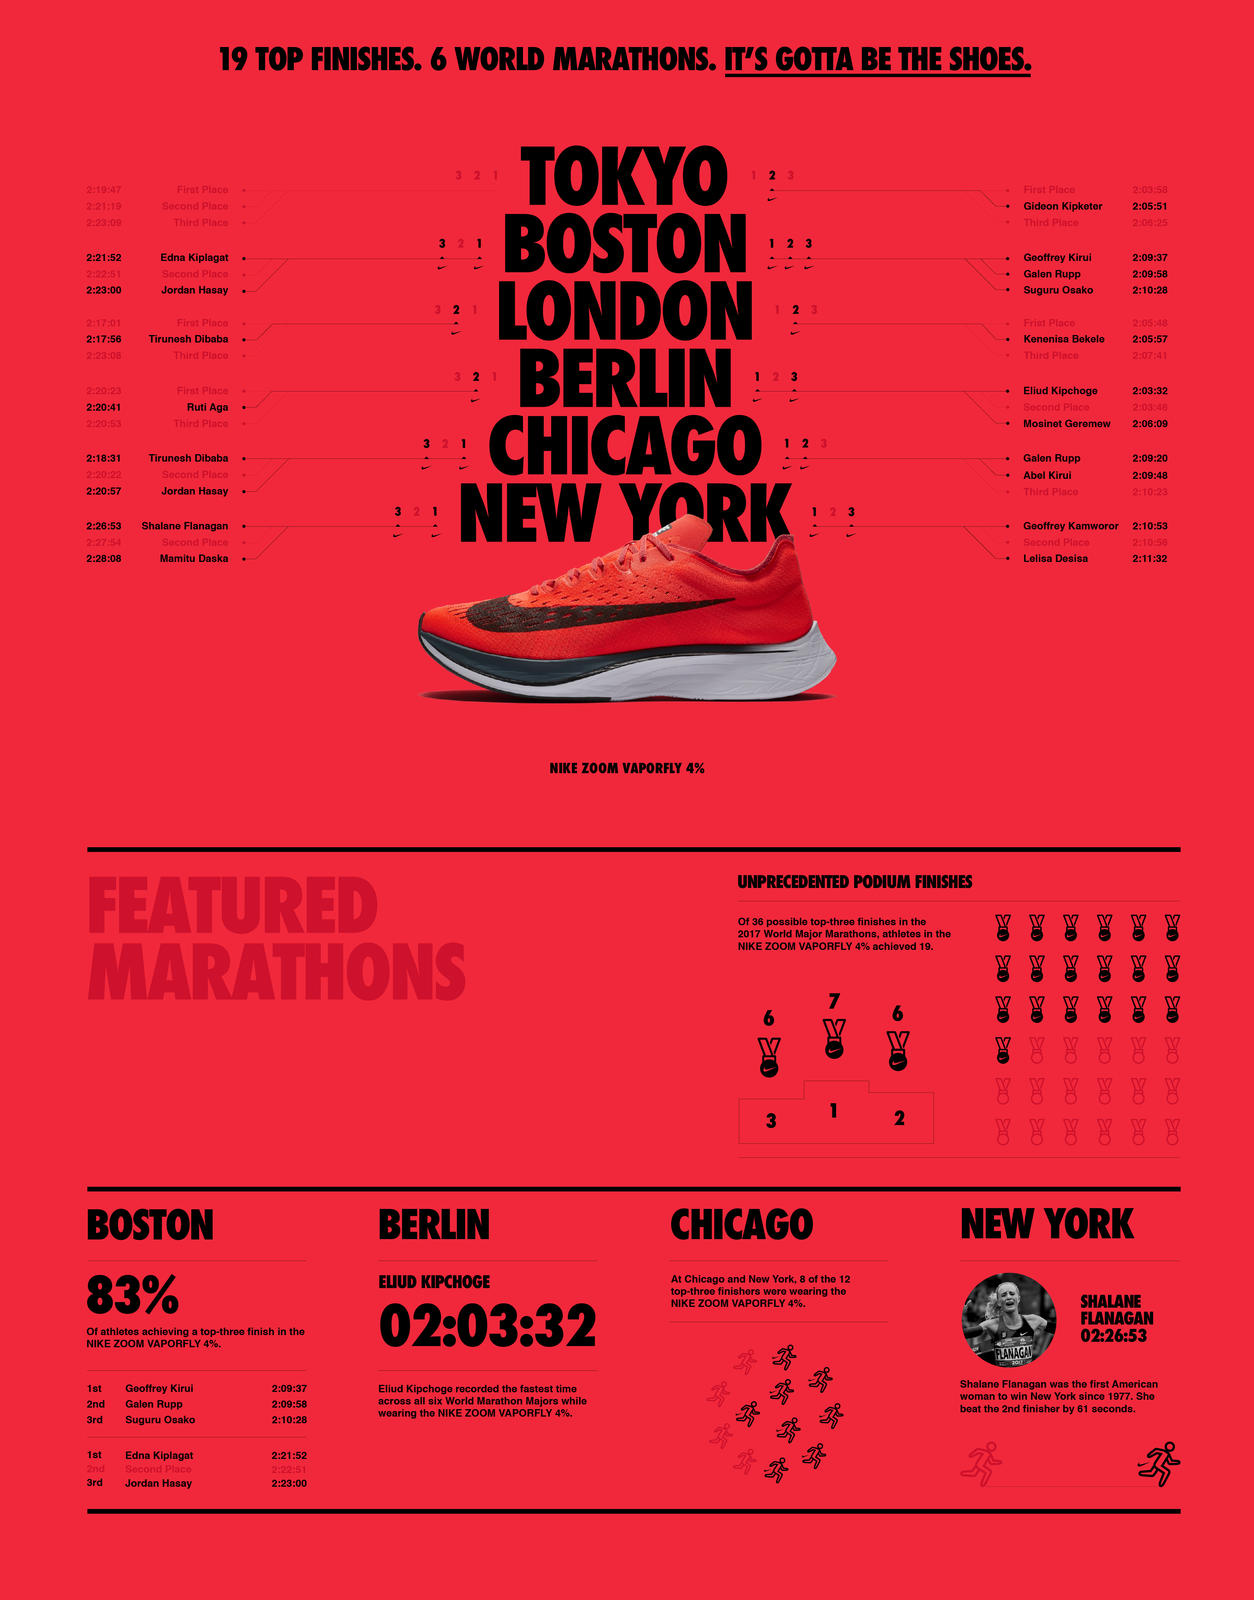 By the Numbers: The Nike Zoom Vaporfly 4% Dominates Marathons 4